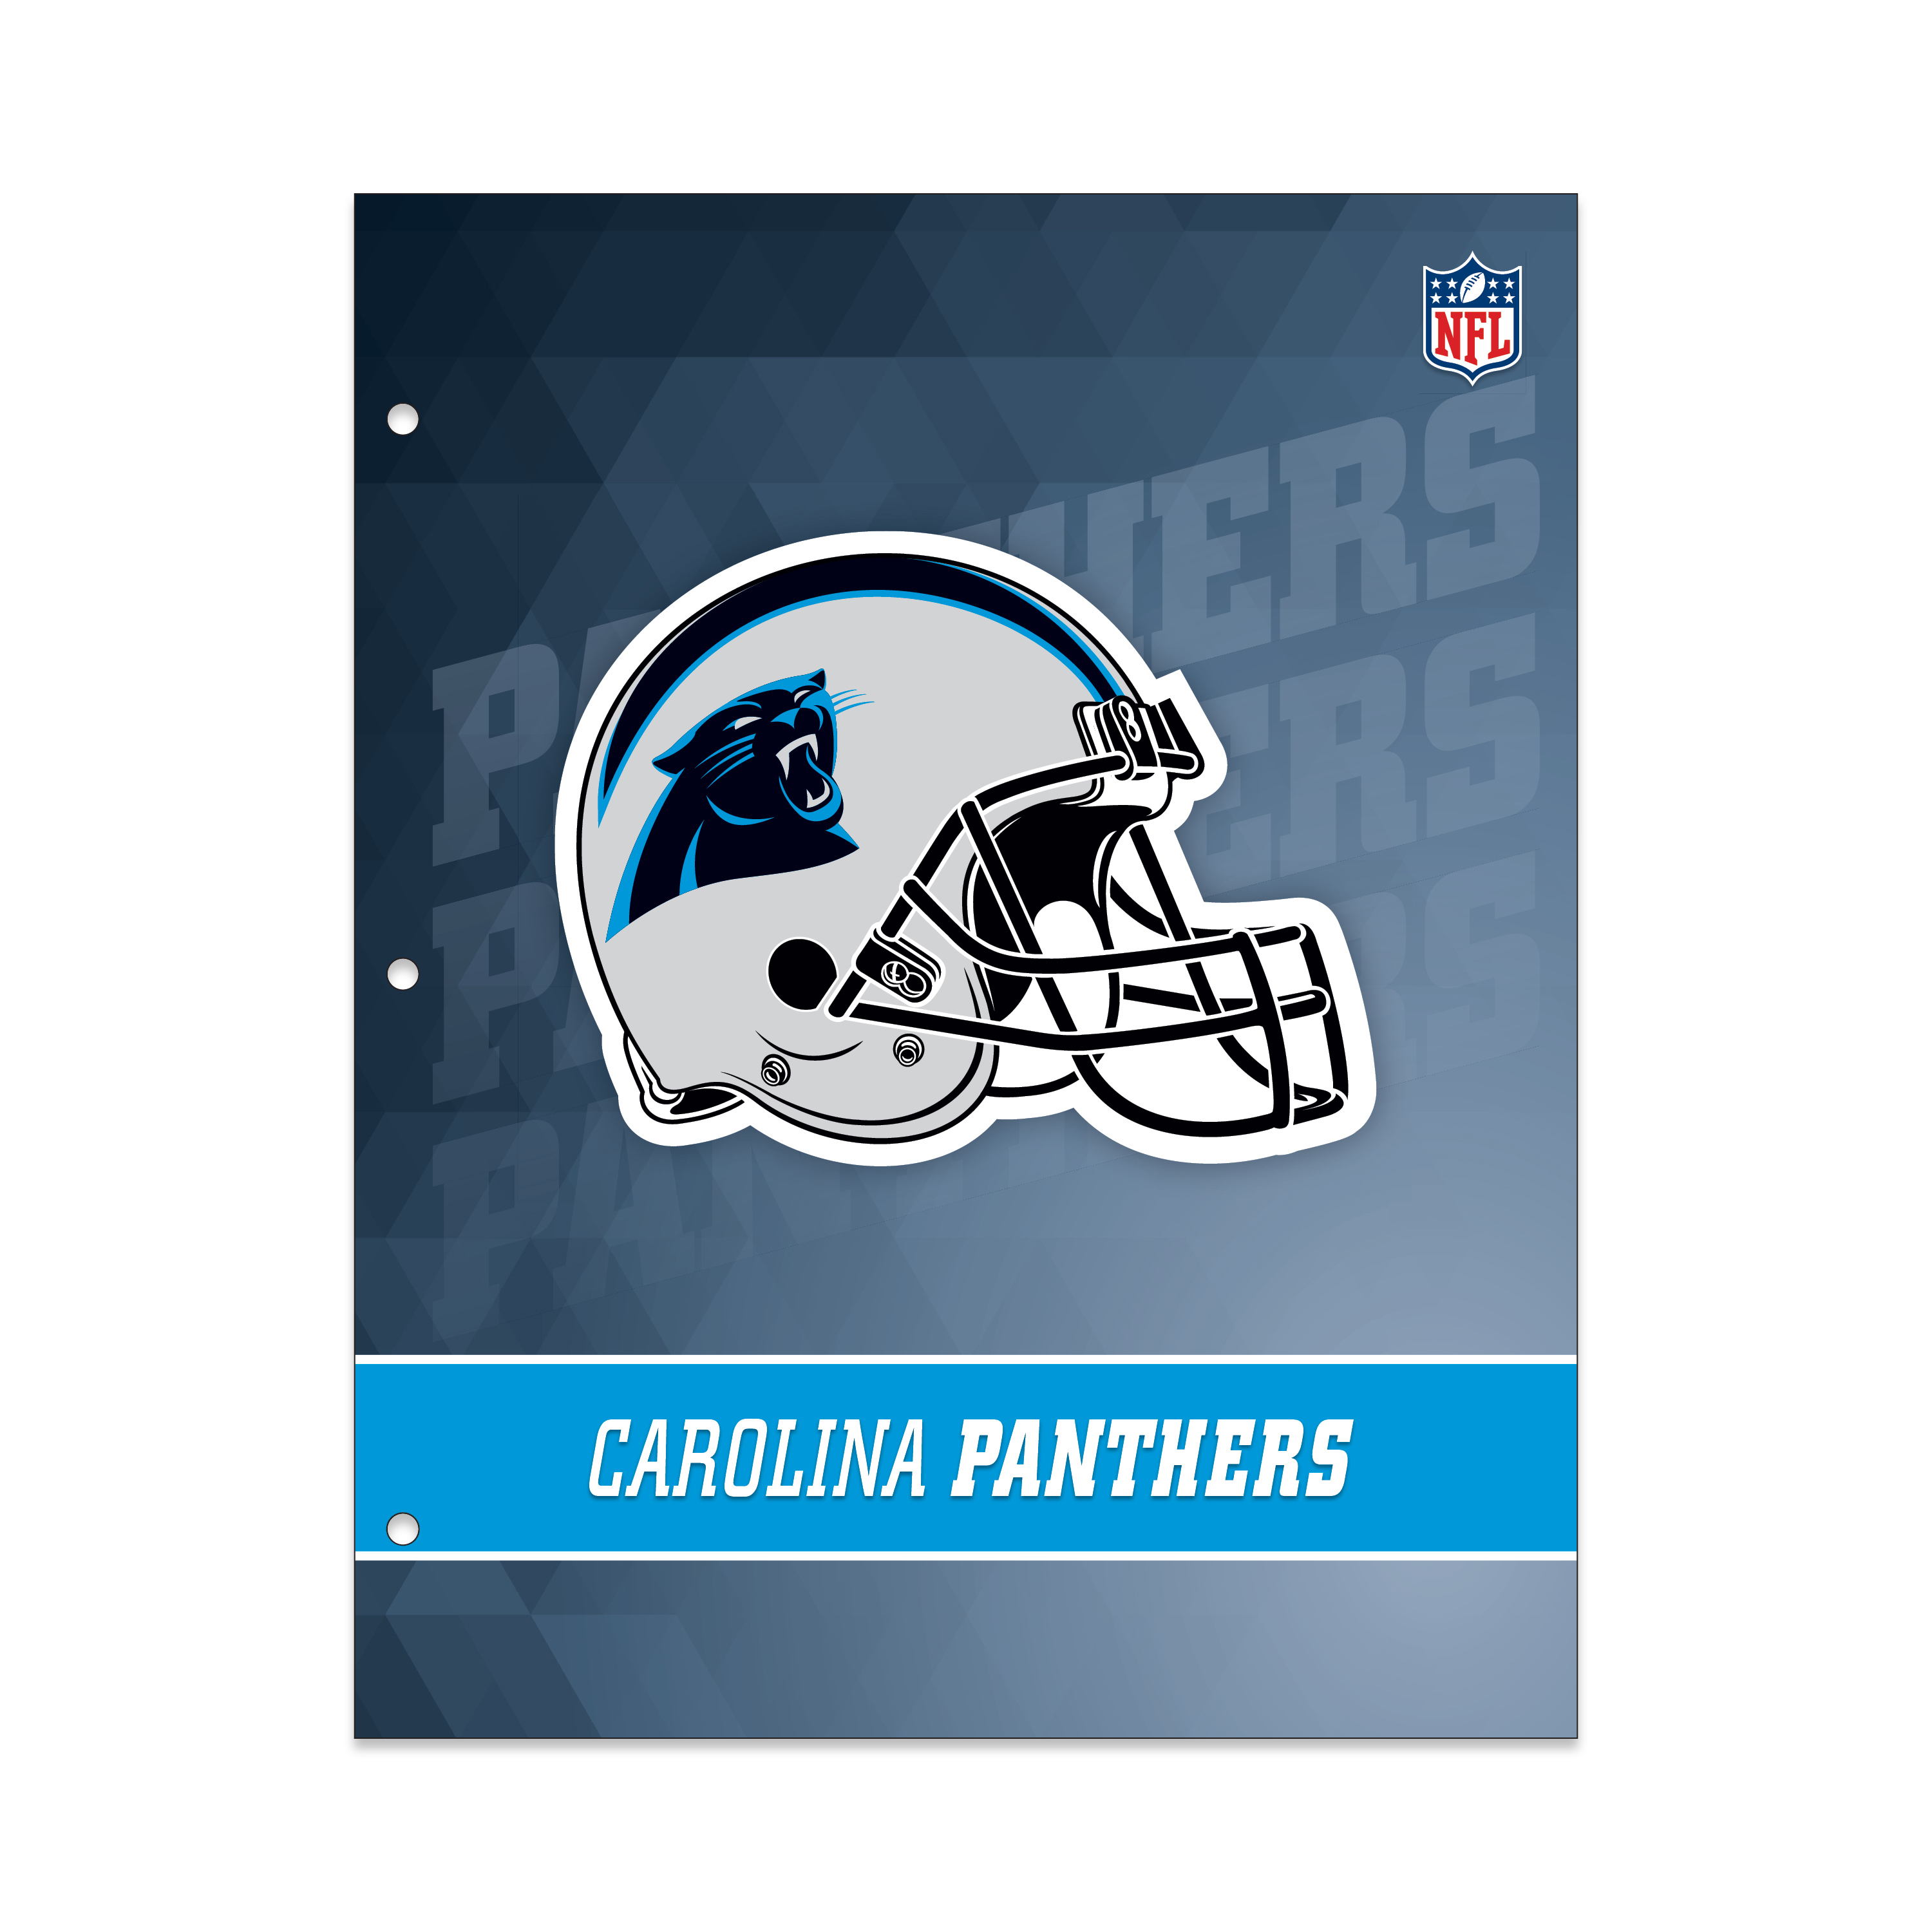 NFL Carolina Panthers 2 Pocket Portfolio, Three Hole Punched, Fits Letter Size